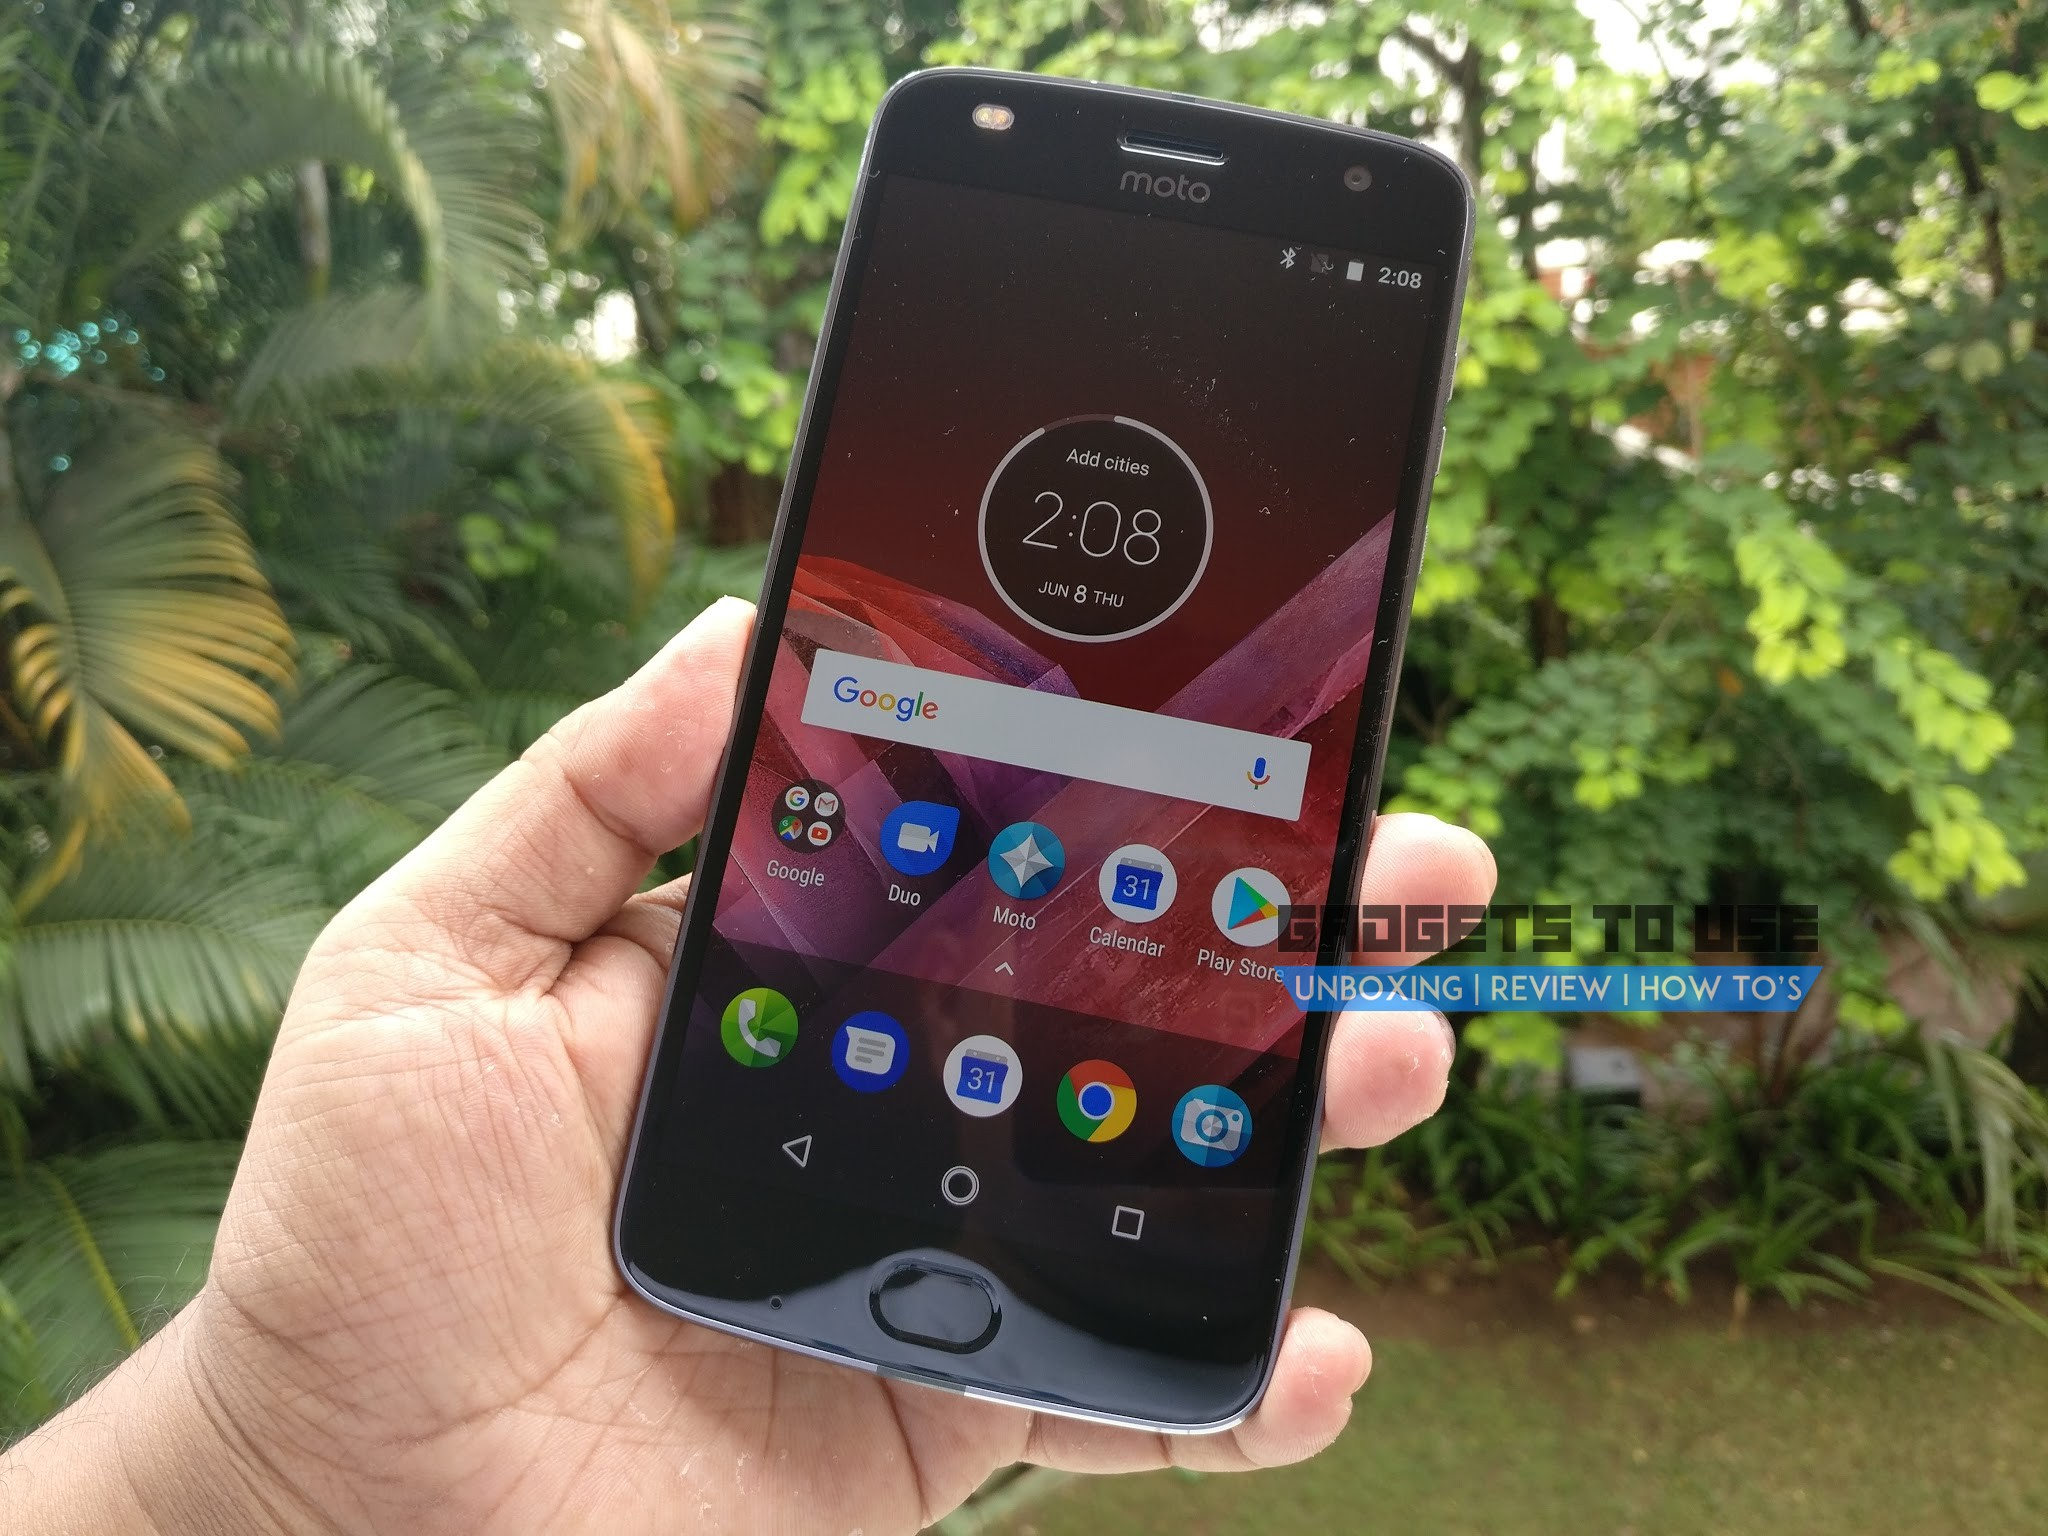 lenovo k8 note android 8.0 oreo update